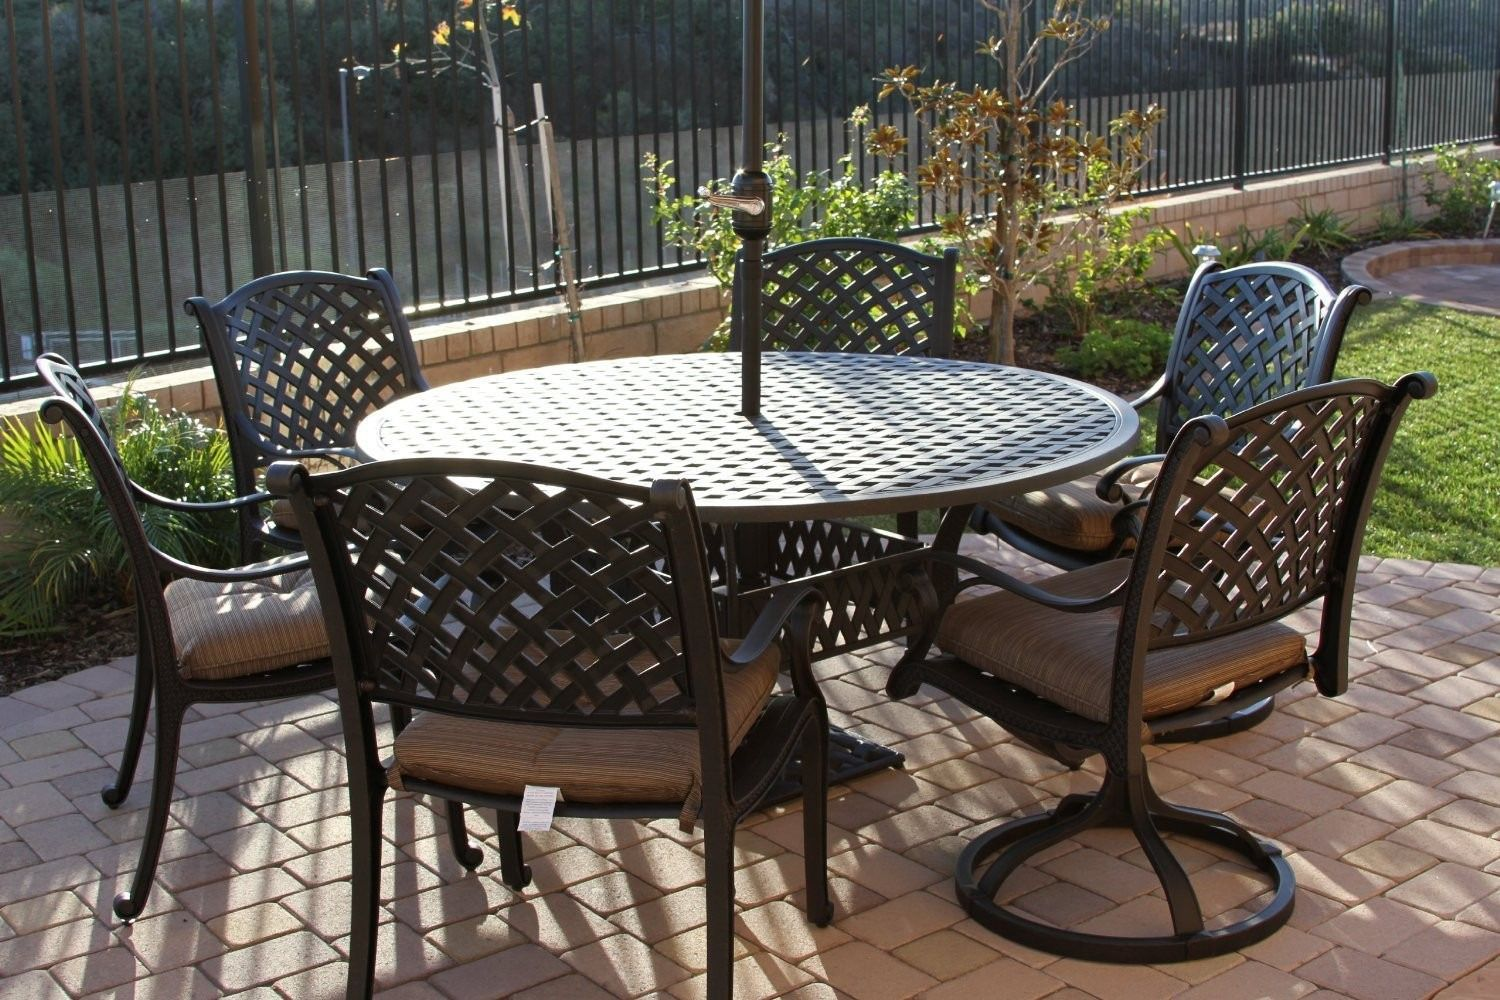 100+ 60 Inch Round Patio Table Sets - Best Paint for Wood Furniture ...